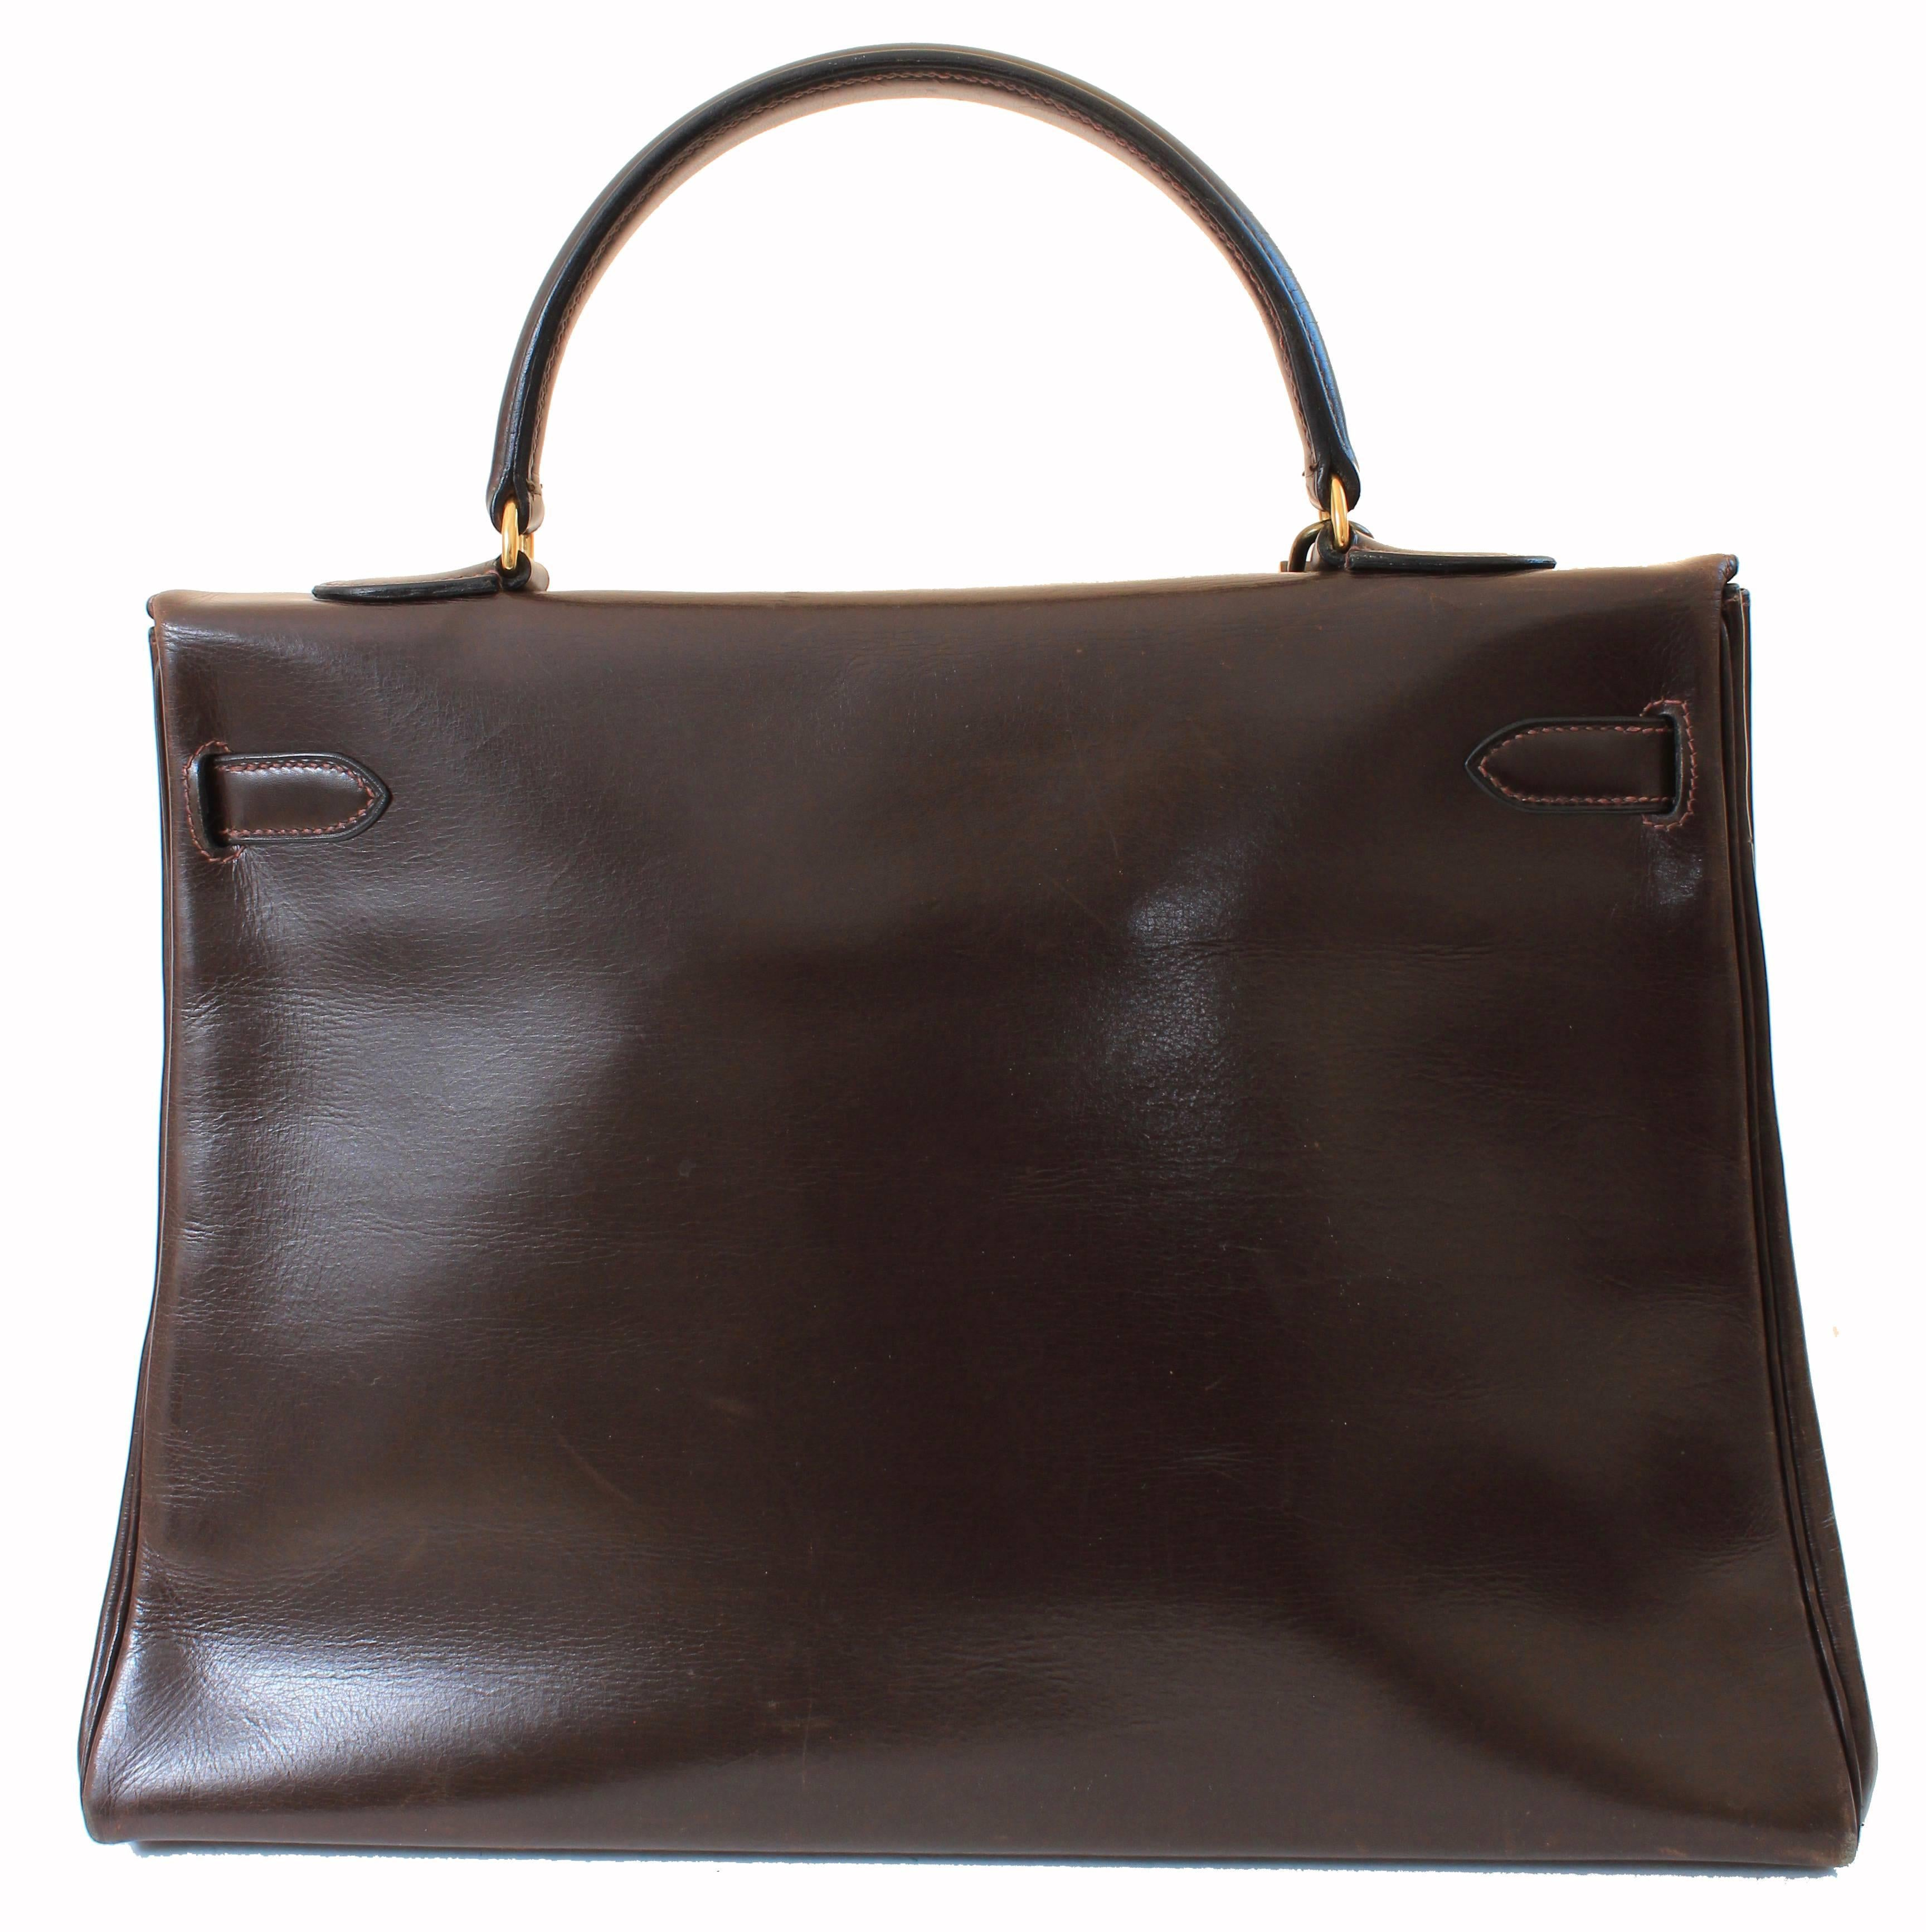 7233229466e Hermes Kelly Bag 35cm Retourne Sac a Depeches Brown Box Leather Vintage For  Sale at 1stdibs